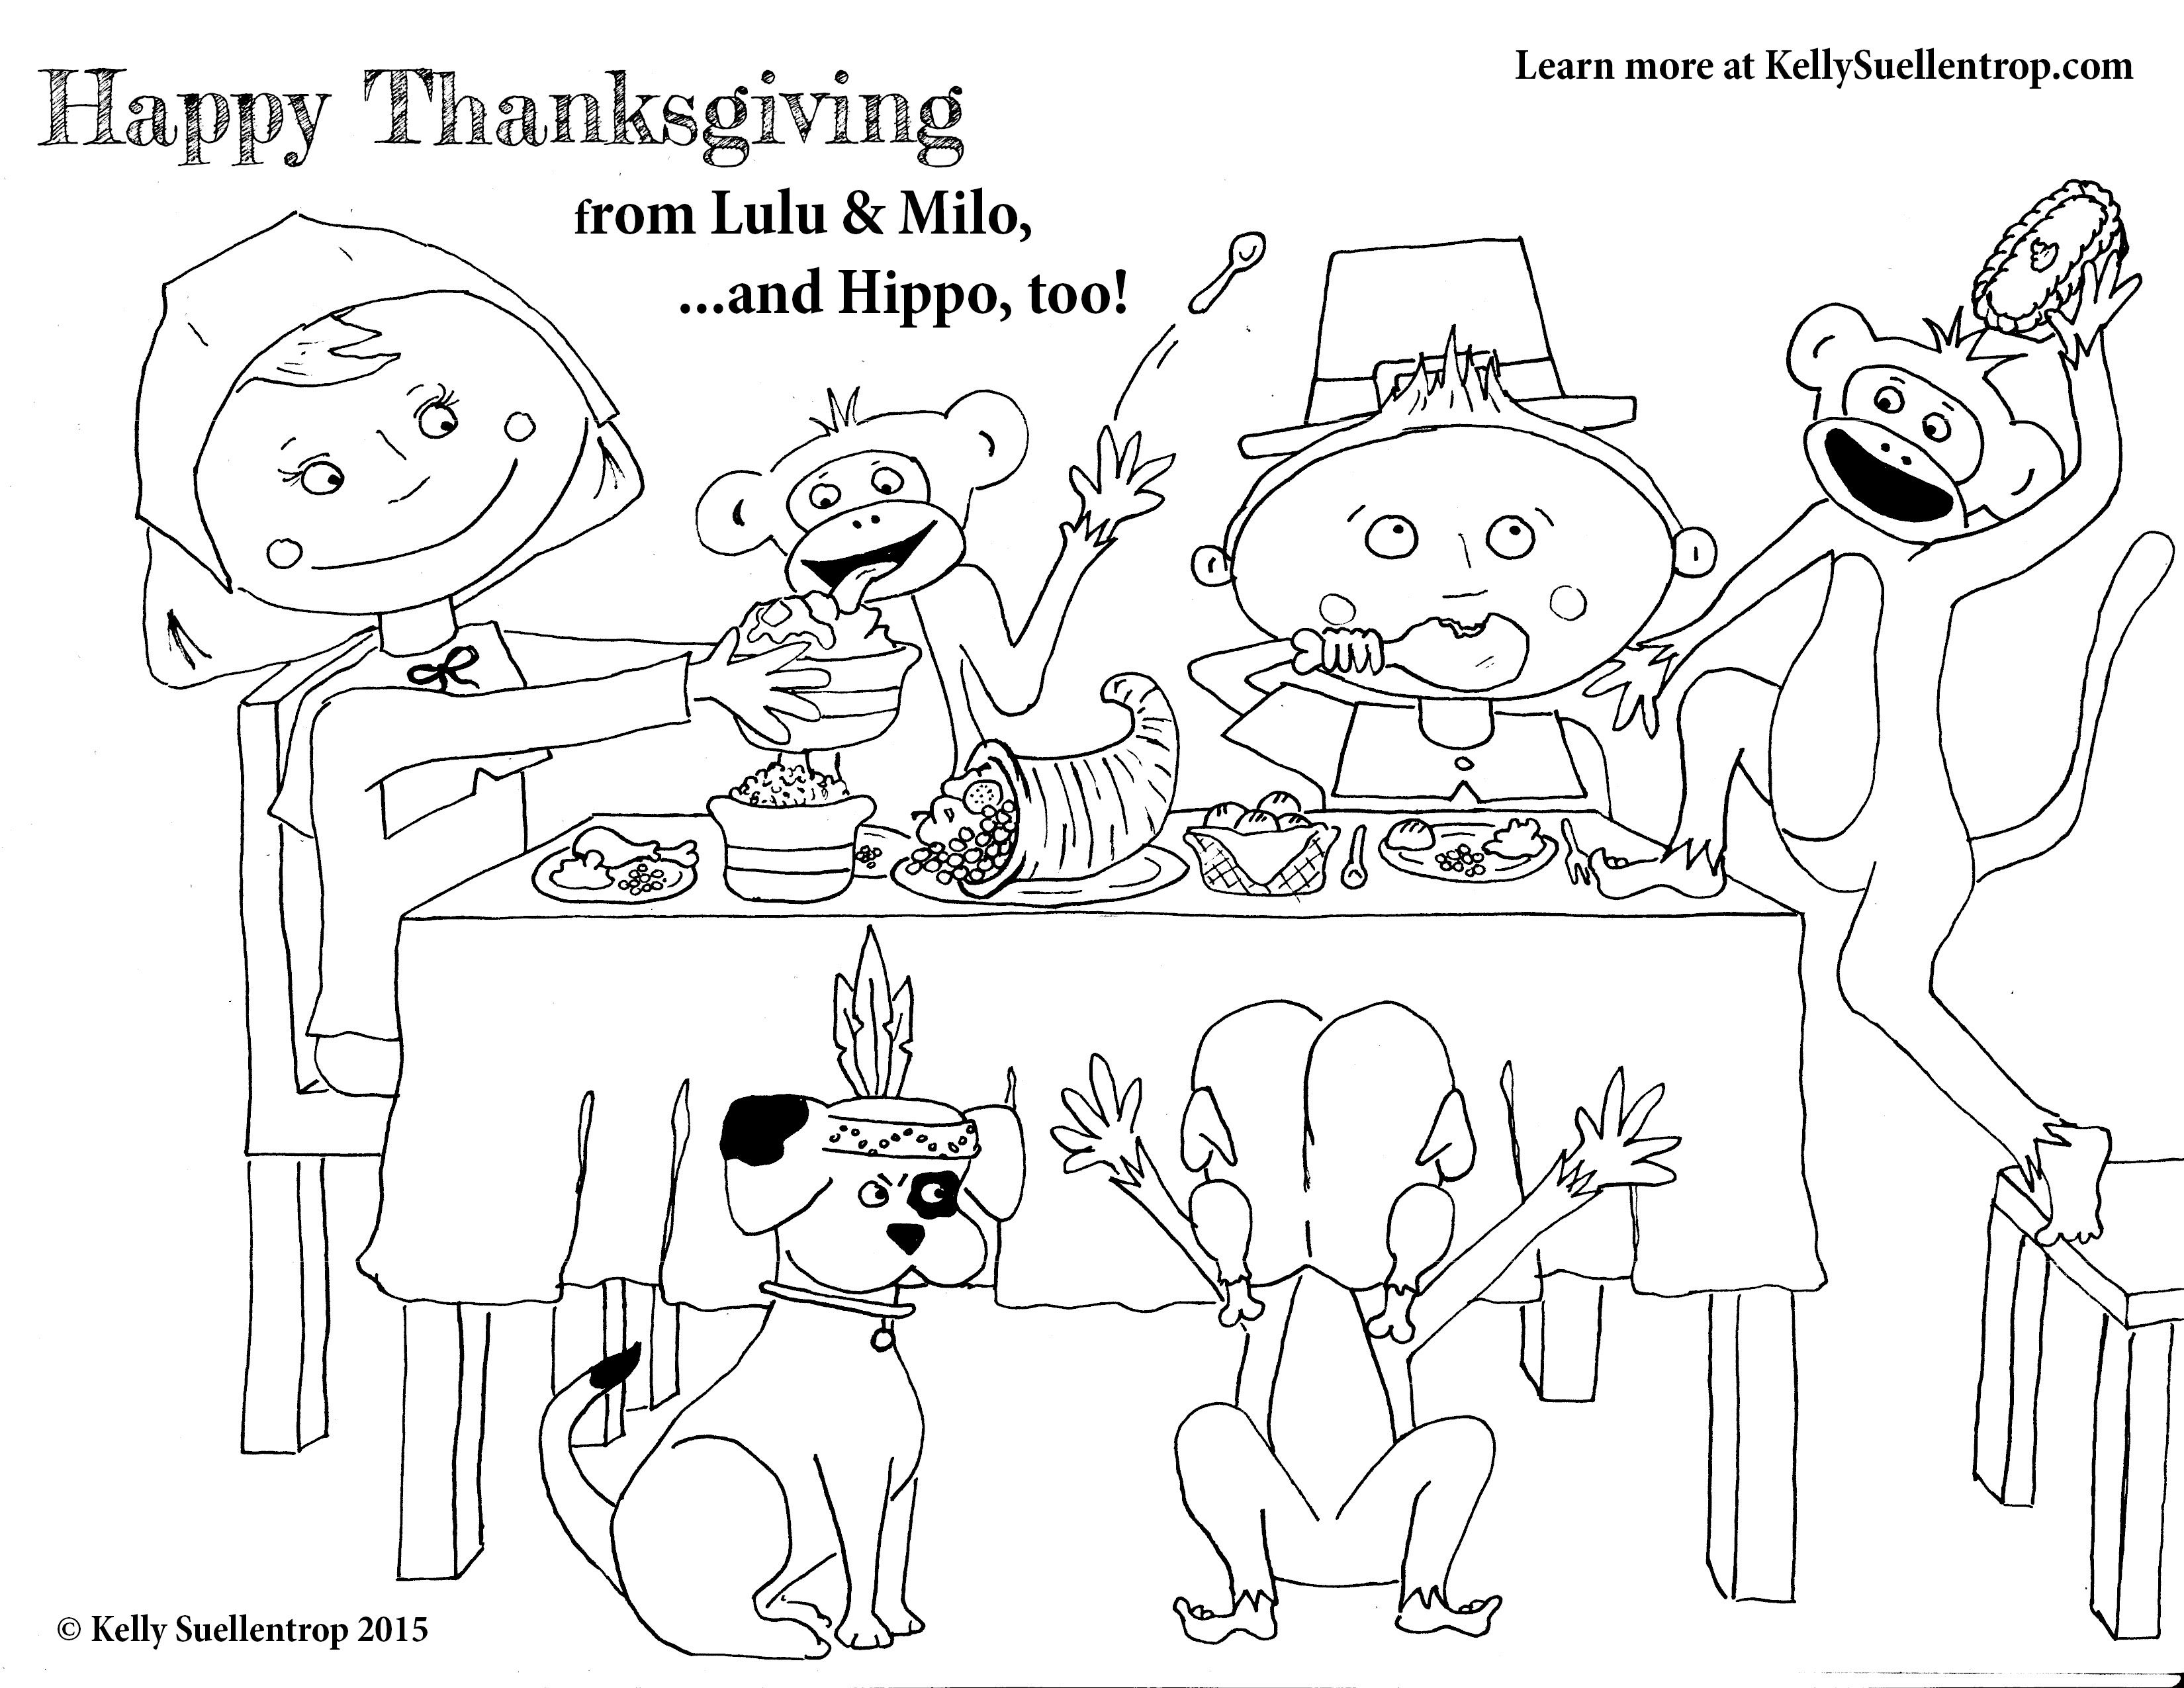 Free printable thanksgiving coloring sheet happy thanksgiving from